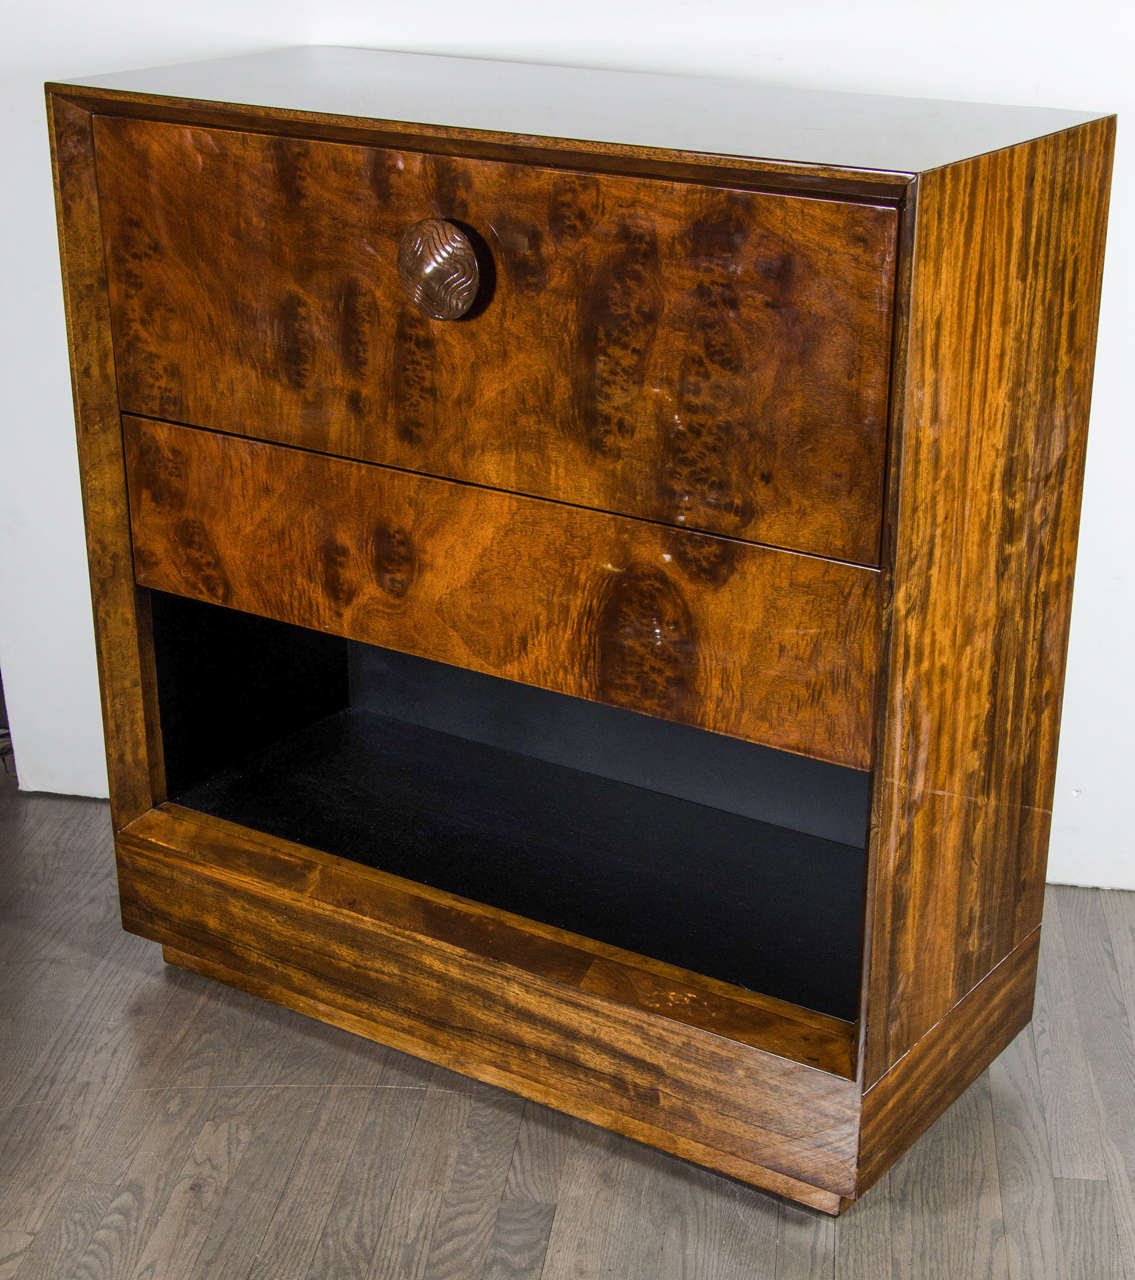 art deco drop front secretaire or bar cabinet by gilbert rohde in paldao wood at 1stdibs. Black Bedroom Furniture Sets. Home Design Ideas